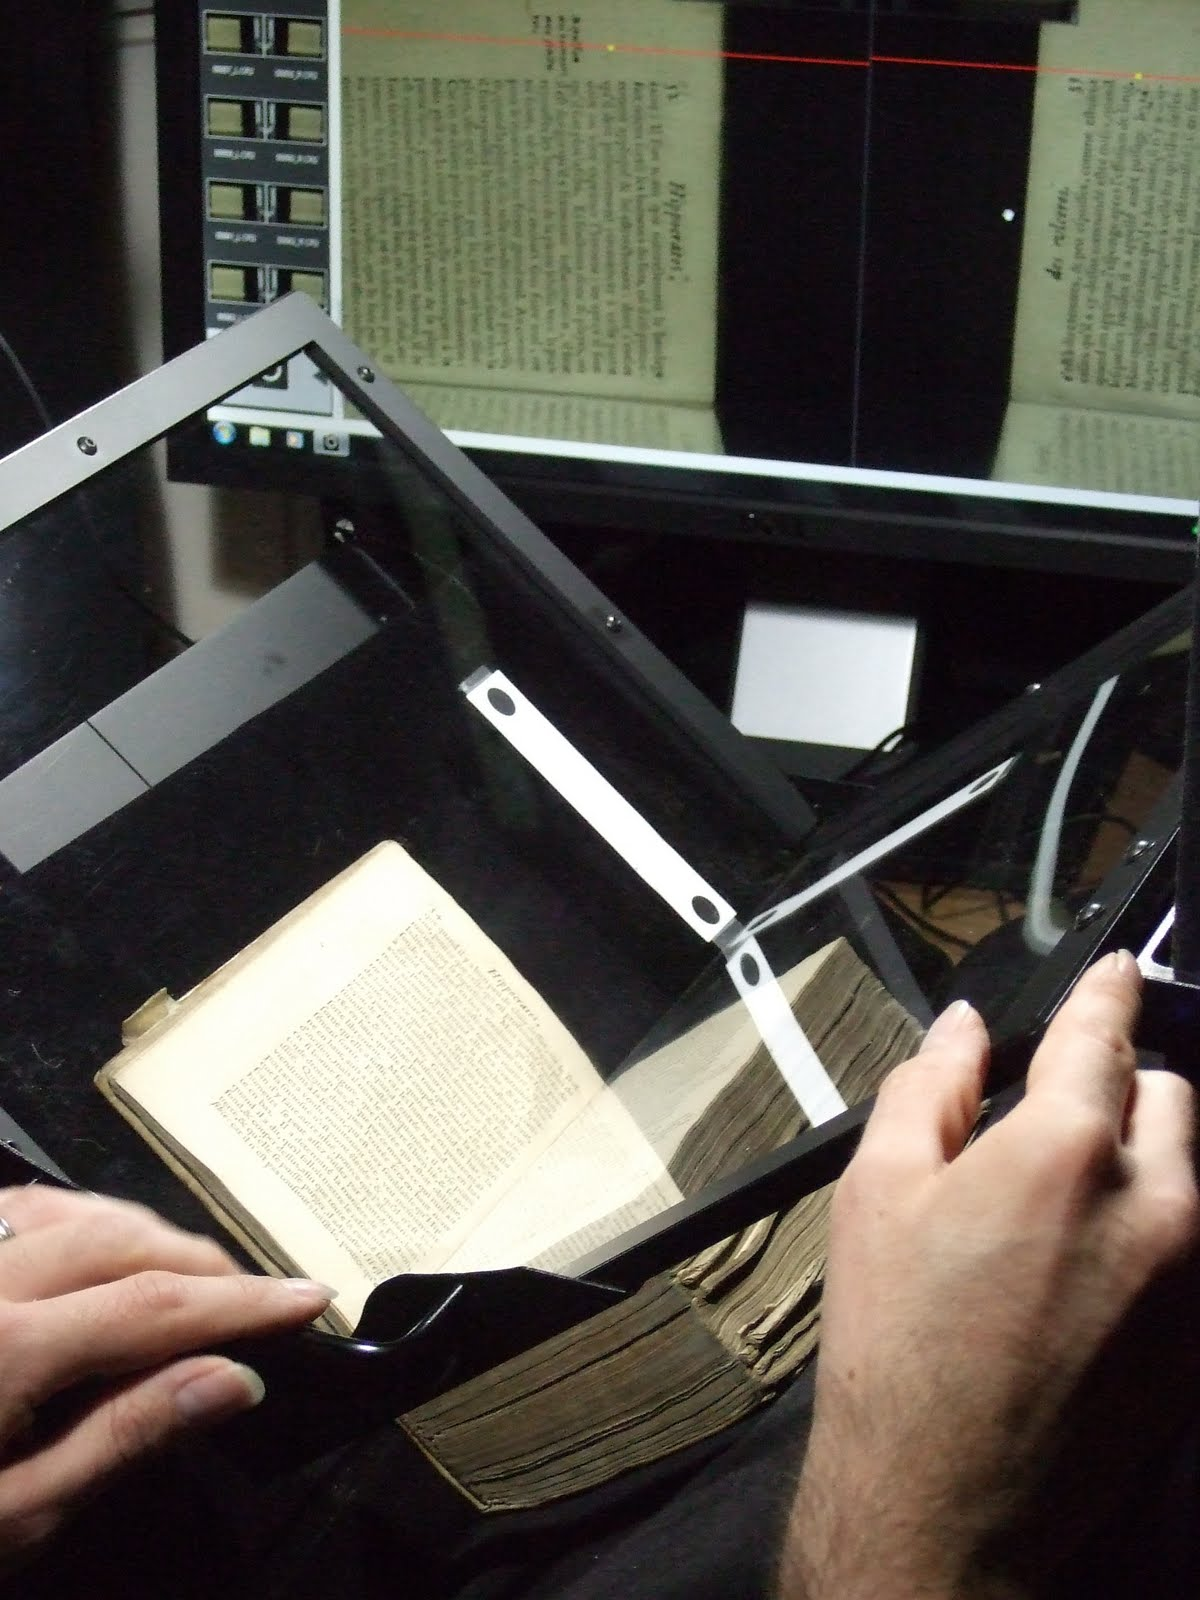 An Atiz Bookdrive imaging system in use on the collection.